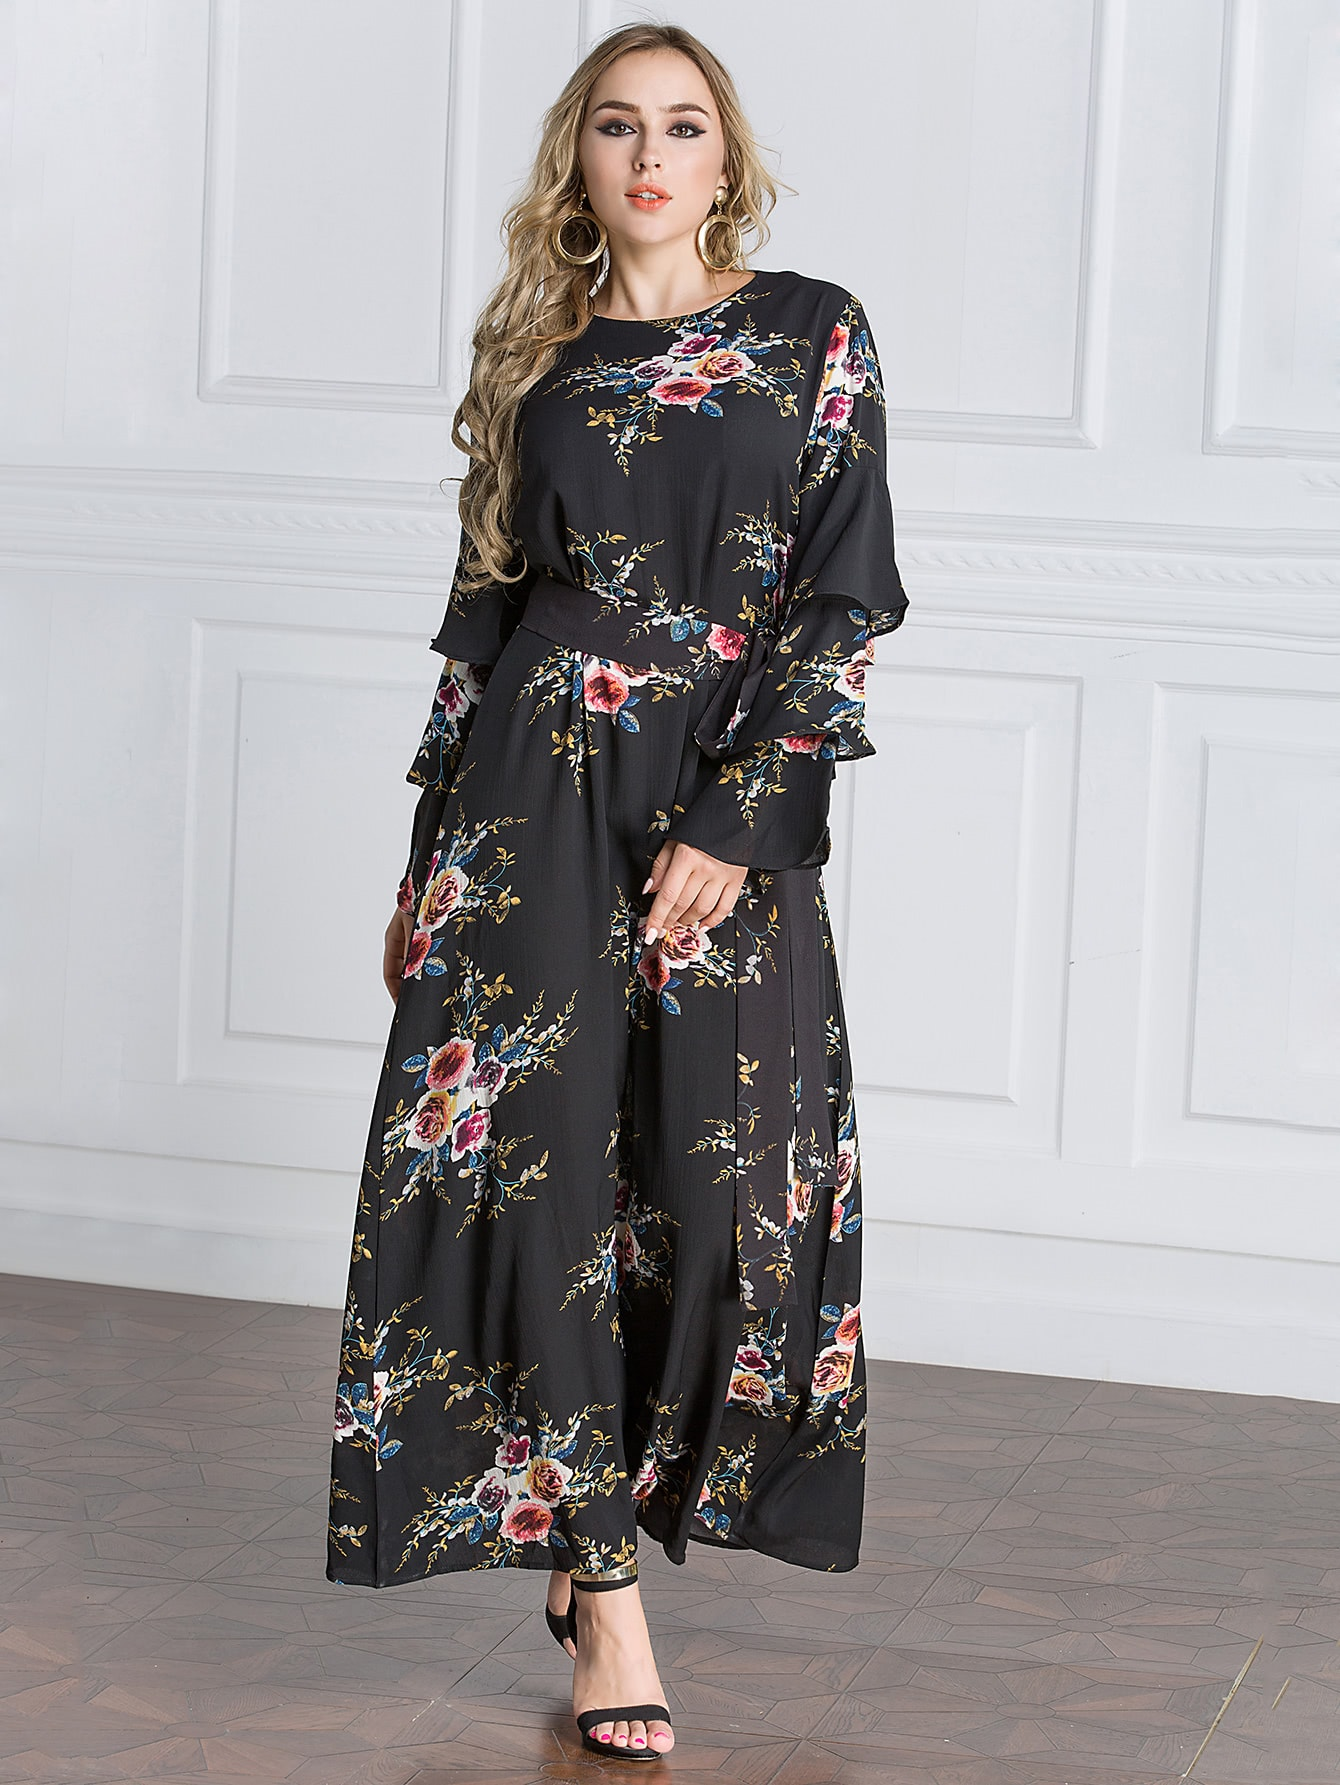 Layered Sleeve Floral Print Maxi Dress pearl detail layered frill sleeve top